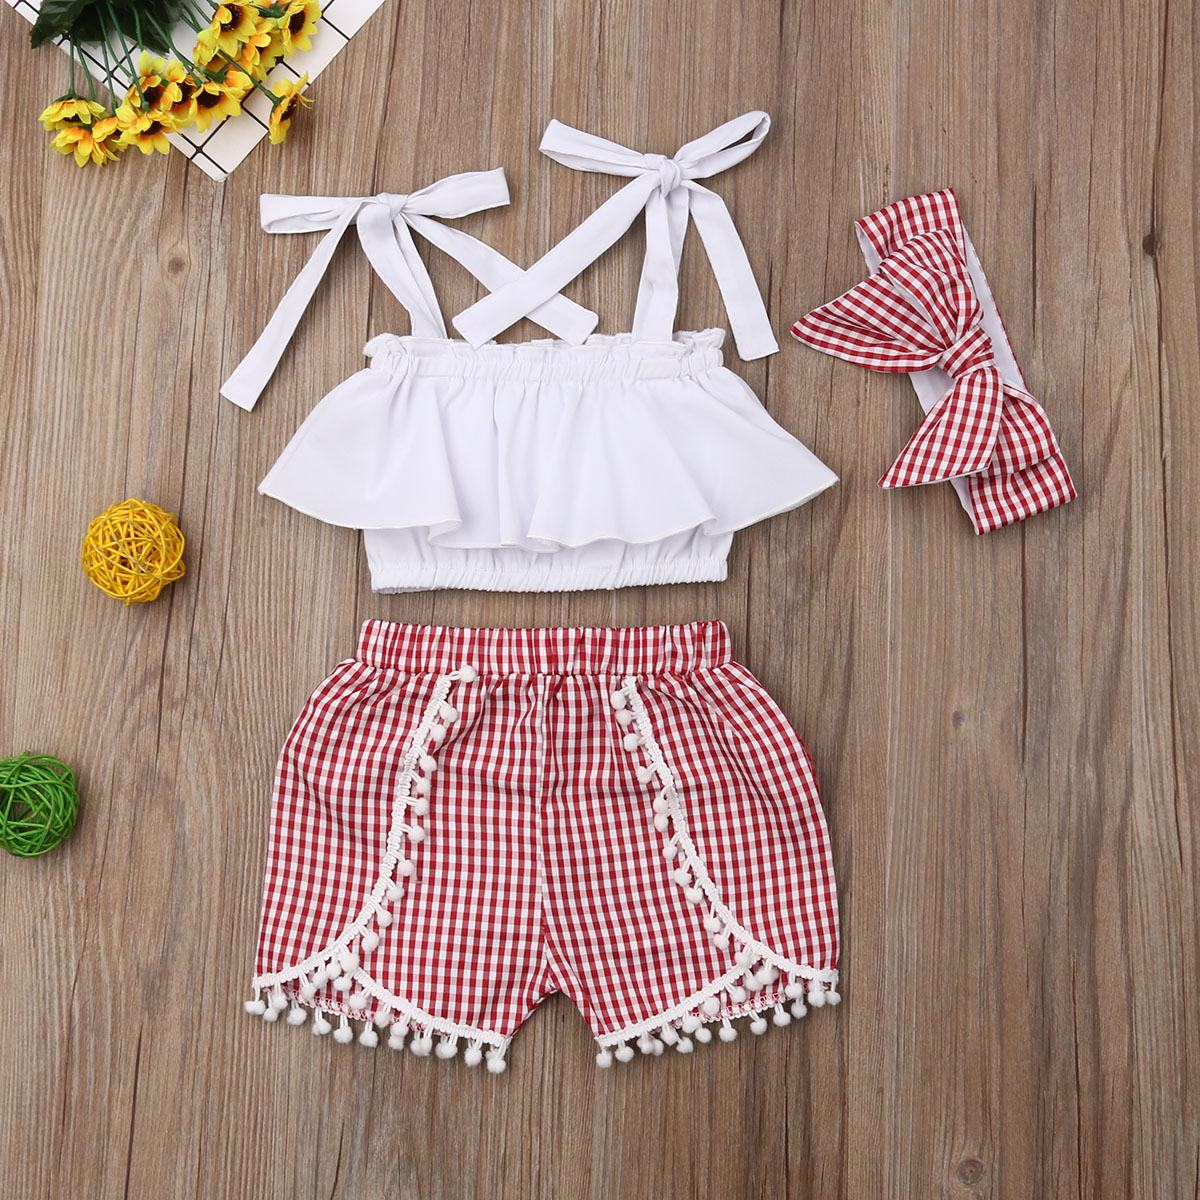 Newborn Toddler Baby kid Girl Top Dress+Headband+Pants Summer Outfit Clothes Set